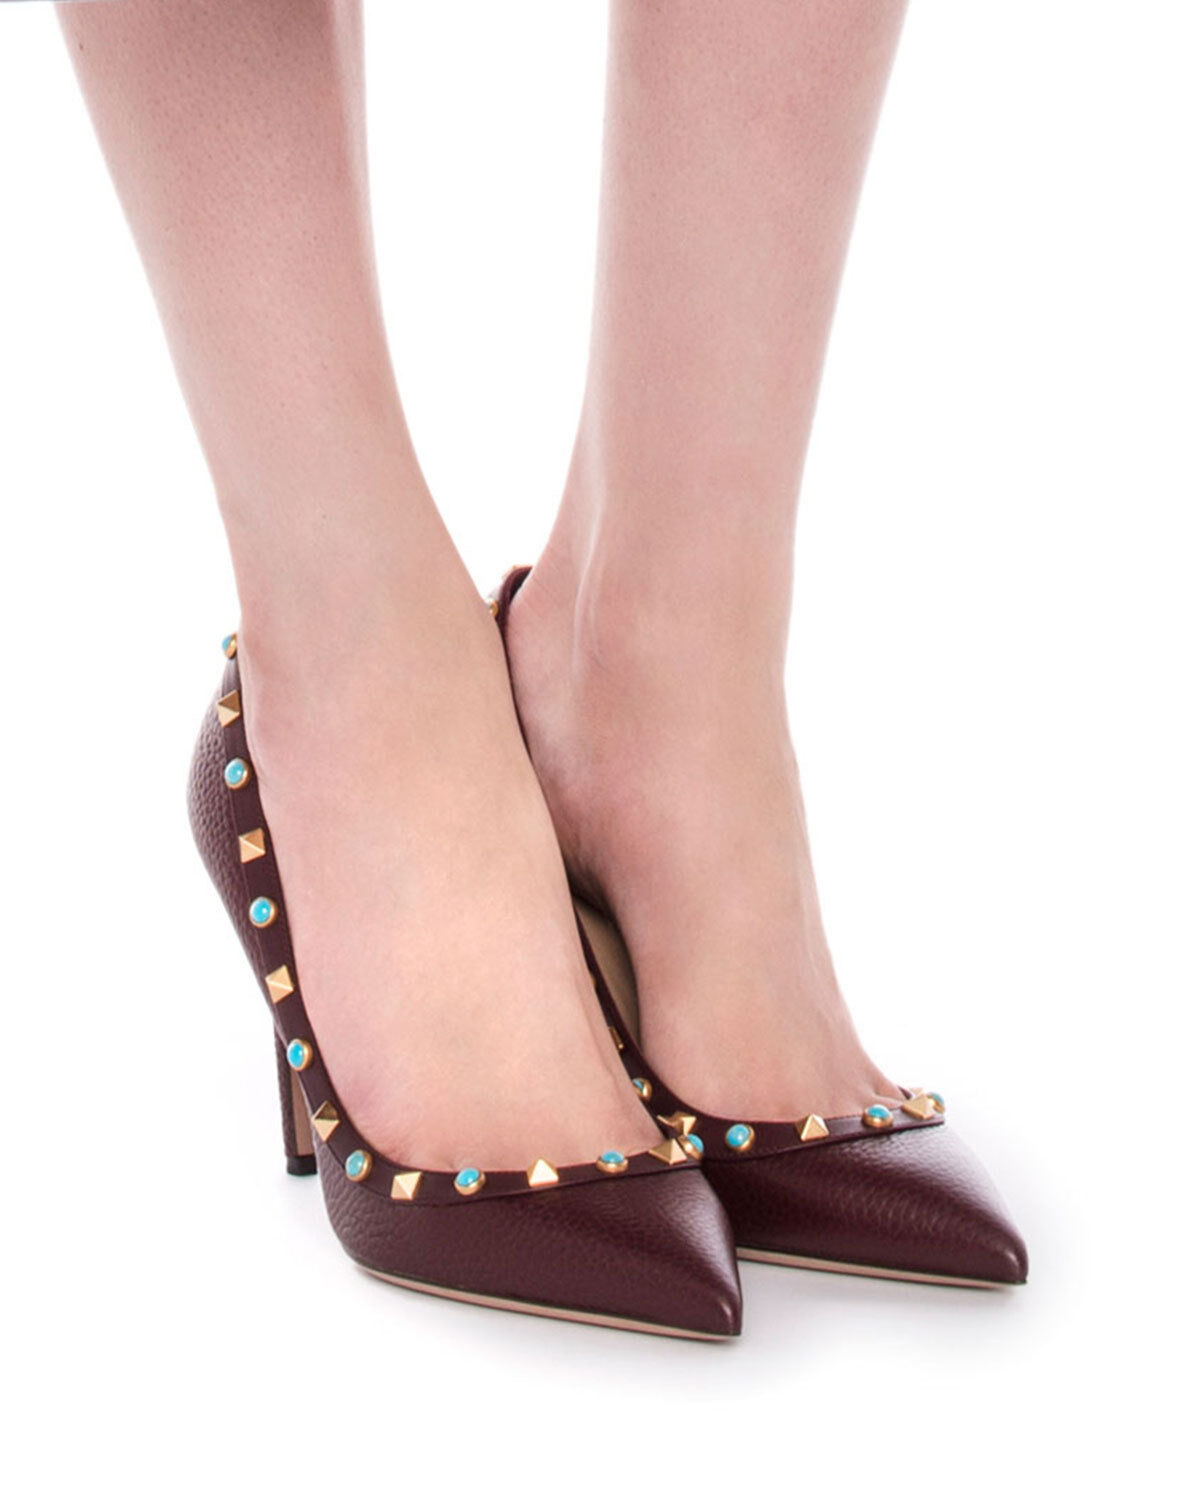 1095 NEW Valentino Rockstud 36.5 Rolling Grained Leather Pointy Pumps Burgundy